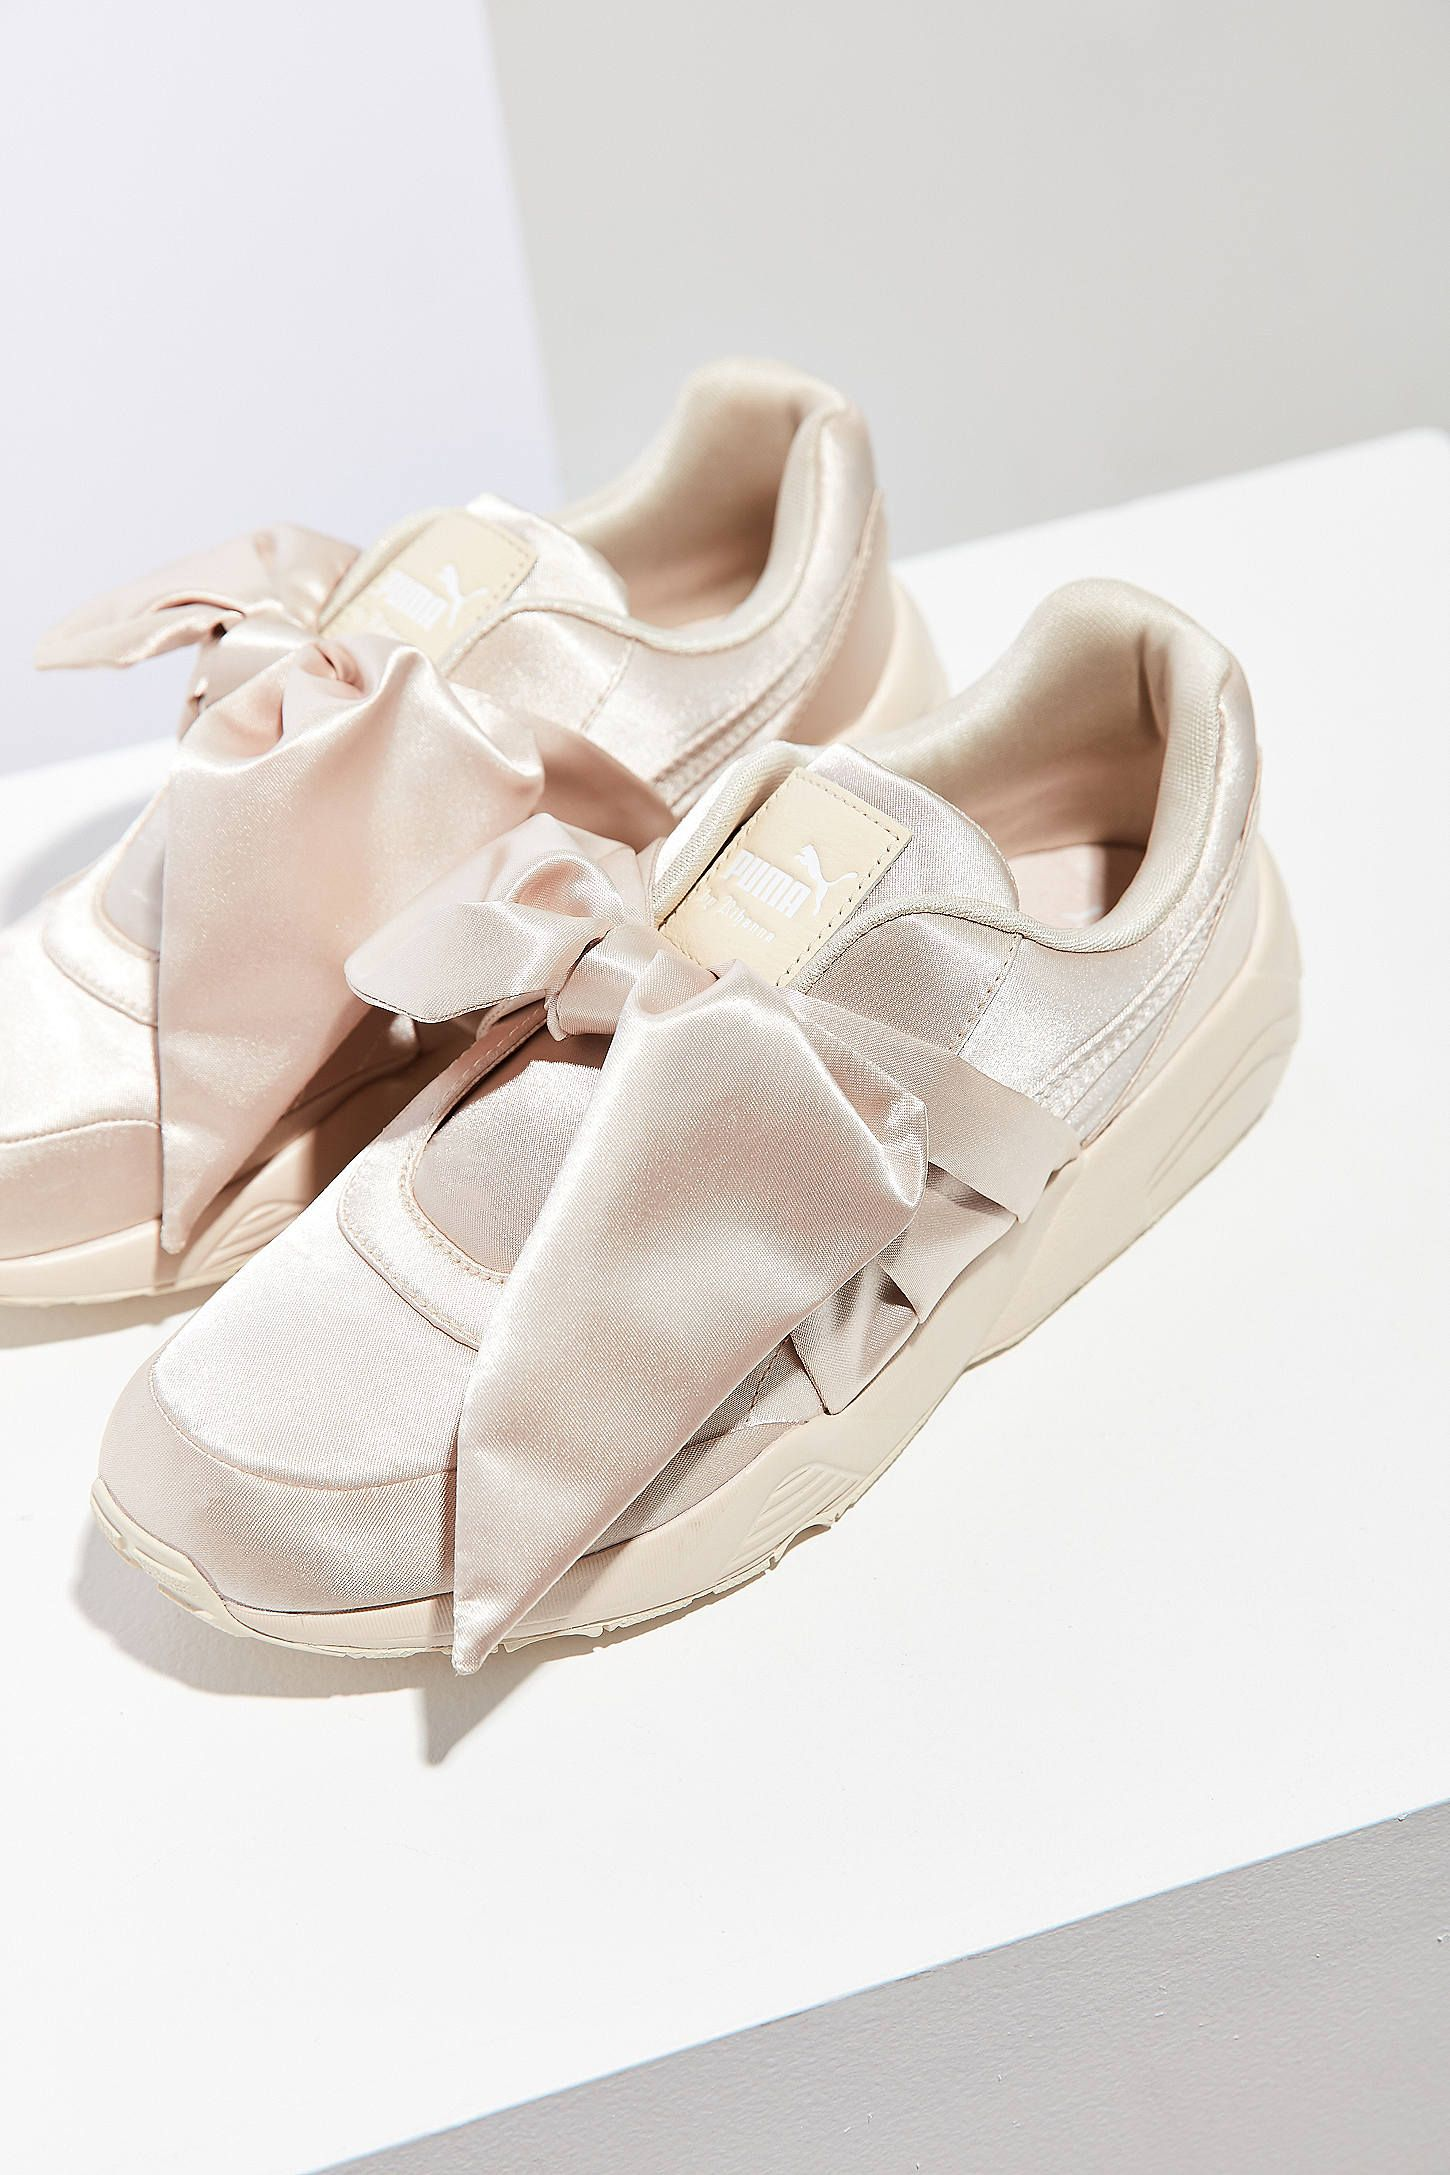 0727e51ae085 Slide View  1  Puma Fenty by Rihanna Satin Bow Sneaker